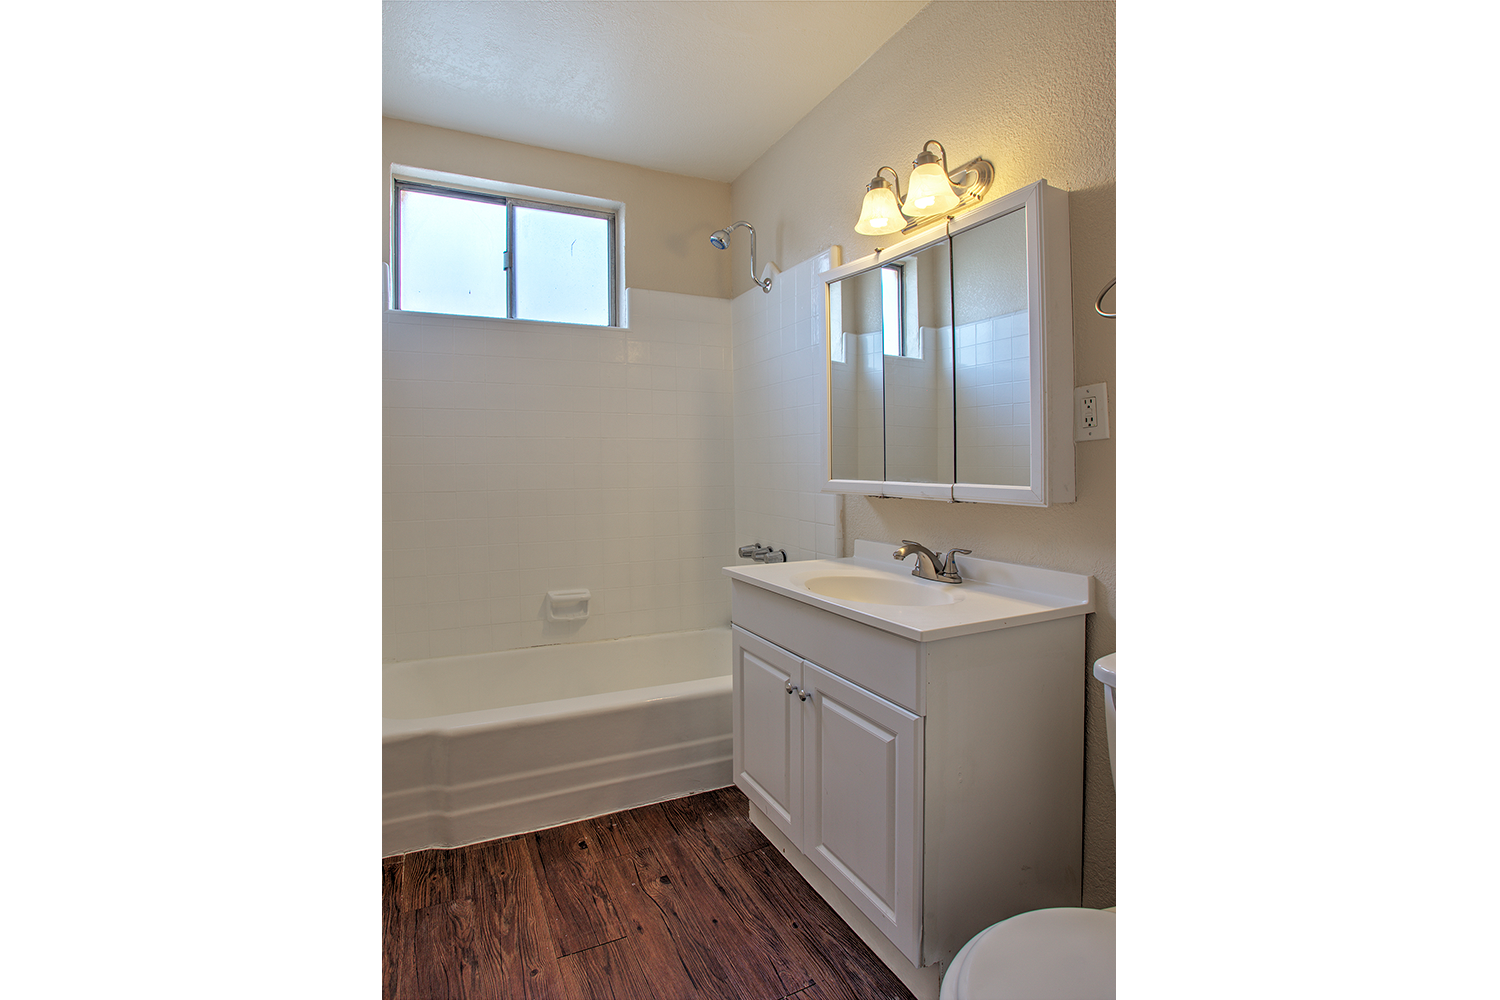 Updated bathroom at 14517 Larch